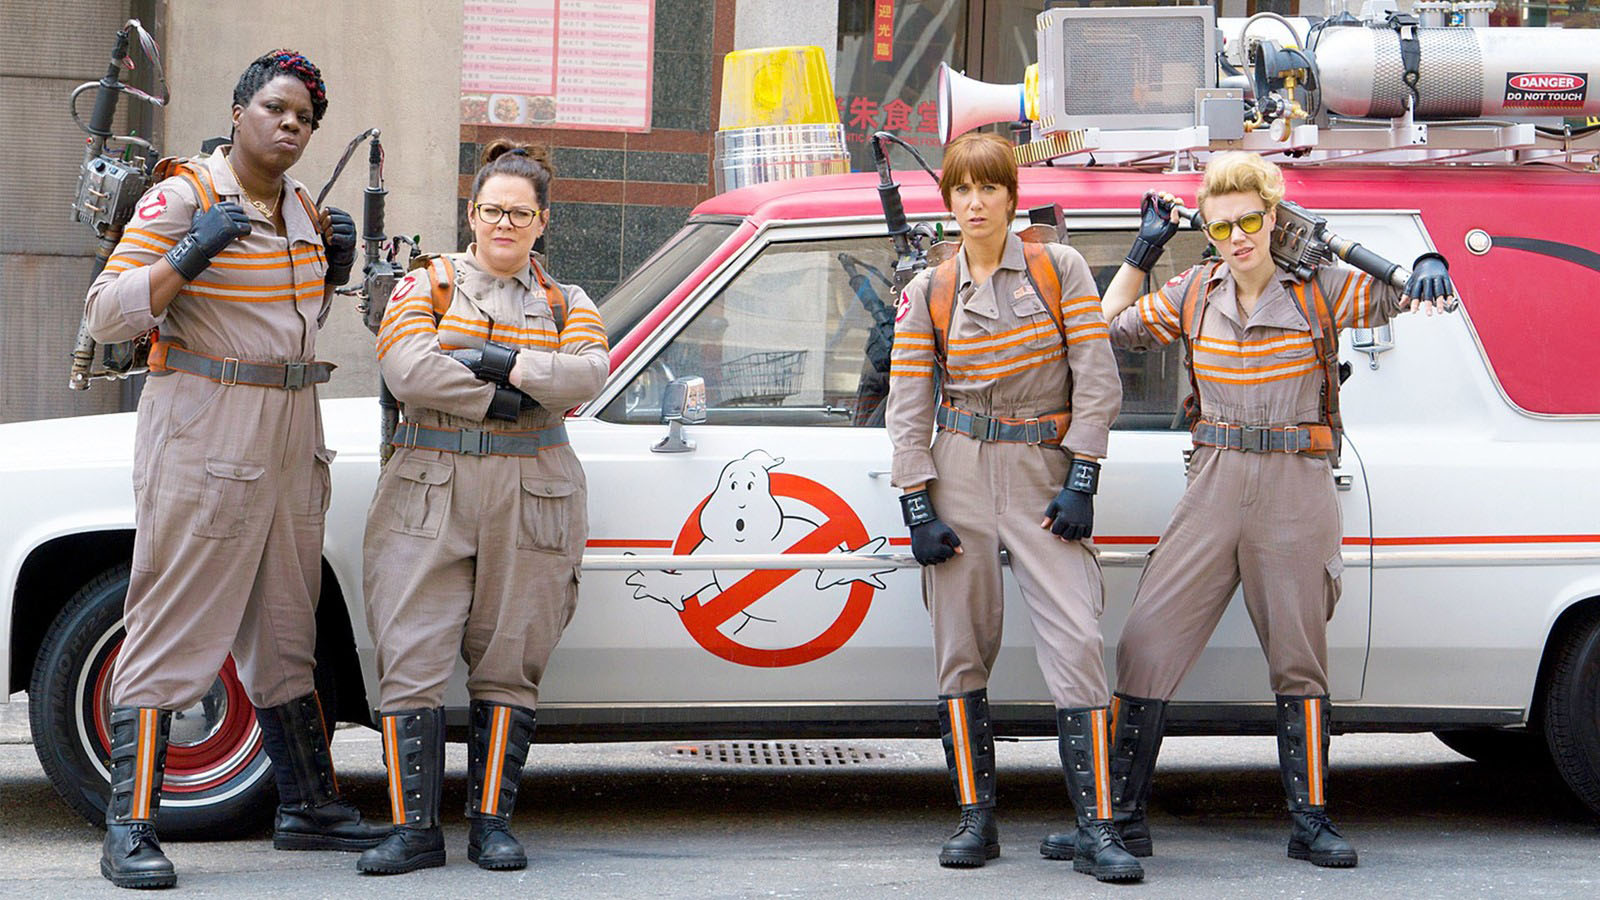 http://cinemaholics.ru/content/images/2016/06/Ghostbusters-2016.jpg